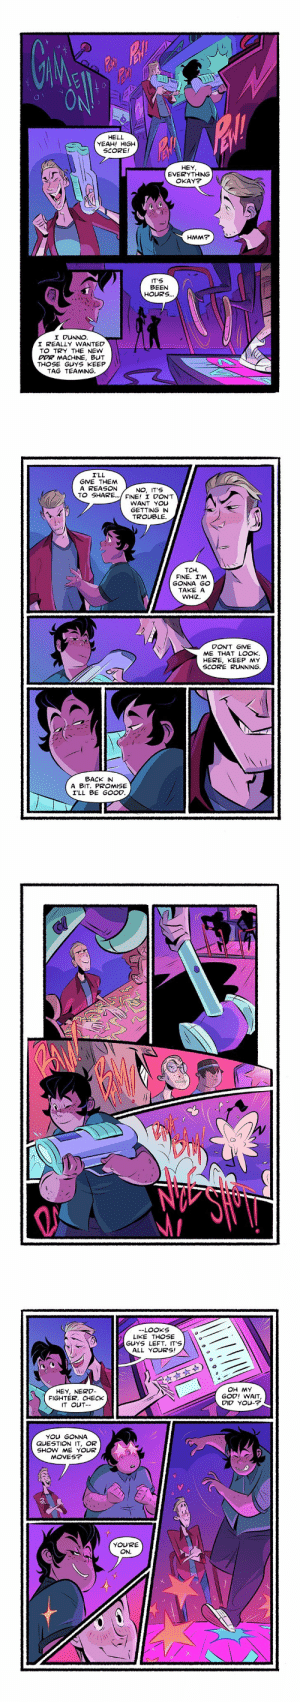 longexposurecomic:  ummm hello check out this AMAZING NEW GUEST COMIC BY @pichikui !!! i'm in love with these pages… the style and those COLORS? mitch and jonas look amazing and so EXPRESSIVE! please check out Gaby's site, twitter, and patreon if you get the chance!! thanks again for the beautiful pages, dude!! 😭😭 and i hope you guys love em as much as i do!! (as for chapter 10… start date will be announced later today on patreon, and tomorrow on my art blog and twitter!)  first page | tapastic | art tumblr | twitter  : Gi  Paty  O t  HELL  YEAH! HIGH  SCORE!  HEY,  EVERYTHING  OKAY?  HMM?  IT'S  BEEN  HOURS...  I DUNNO.  I REALLY WANTED  TO TRY THE NEW  DDR MACHINE, BUT  THOSE GUYS KEEP  TAG TEAMING   I'LL  GIVE THEM  A REASON  TO SHARE...FINE! I DON'T  NO, IT'S  WANT YOU  GETTING IN  TROUBLE  TCH  FINE. I'M  GONNA GO  TAKE A  WHIZ.  DON'T GIVE  ME THAT LOOK.  HERE, KEEP MY  SCORE RUNNING.  BACK IN  BIT. PROMISE  I'LL BE GOOD.   -LOOKS  LIKE THOSE  GUYS LEFT. IT'S  ALL YOURS!  OH MY  GOD! WAIT,  DIO YOU-?  HEY, NERD-  FIGHTER. CHECK  IT OUT  YOU GONNA  QUESTION IT, OR  SHOW ME YOUR  MOVES?  YOURE  ON. longexposurecomic:  ummm hello check out this AMAZING NEW GUEST COMIC BY @pichikui !!! i'm in love with these pages… the style and those COLORS? mitch and jonas look amazing and so EXPRESSIVE! please check out Gaby's site, twitter, and patreon if you get the chance!! thanks again for the beautiful pages, dude!! 😭😭 and i hope you guys love em as much as i do!! (as for chapter 10… start date will be announced later today on patreon, and tomorrow on my art blog and twitter!)  first page | tapastic | art tumblr | twitter